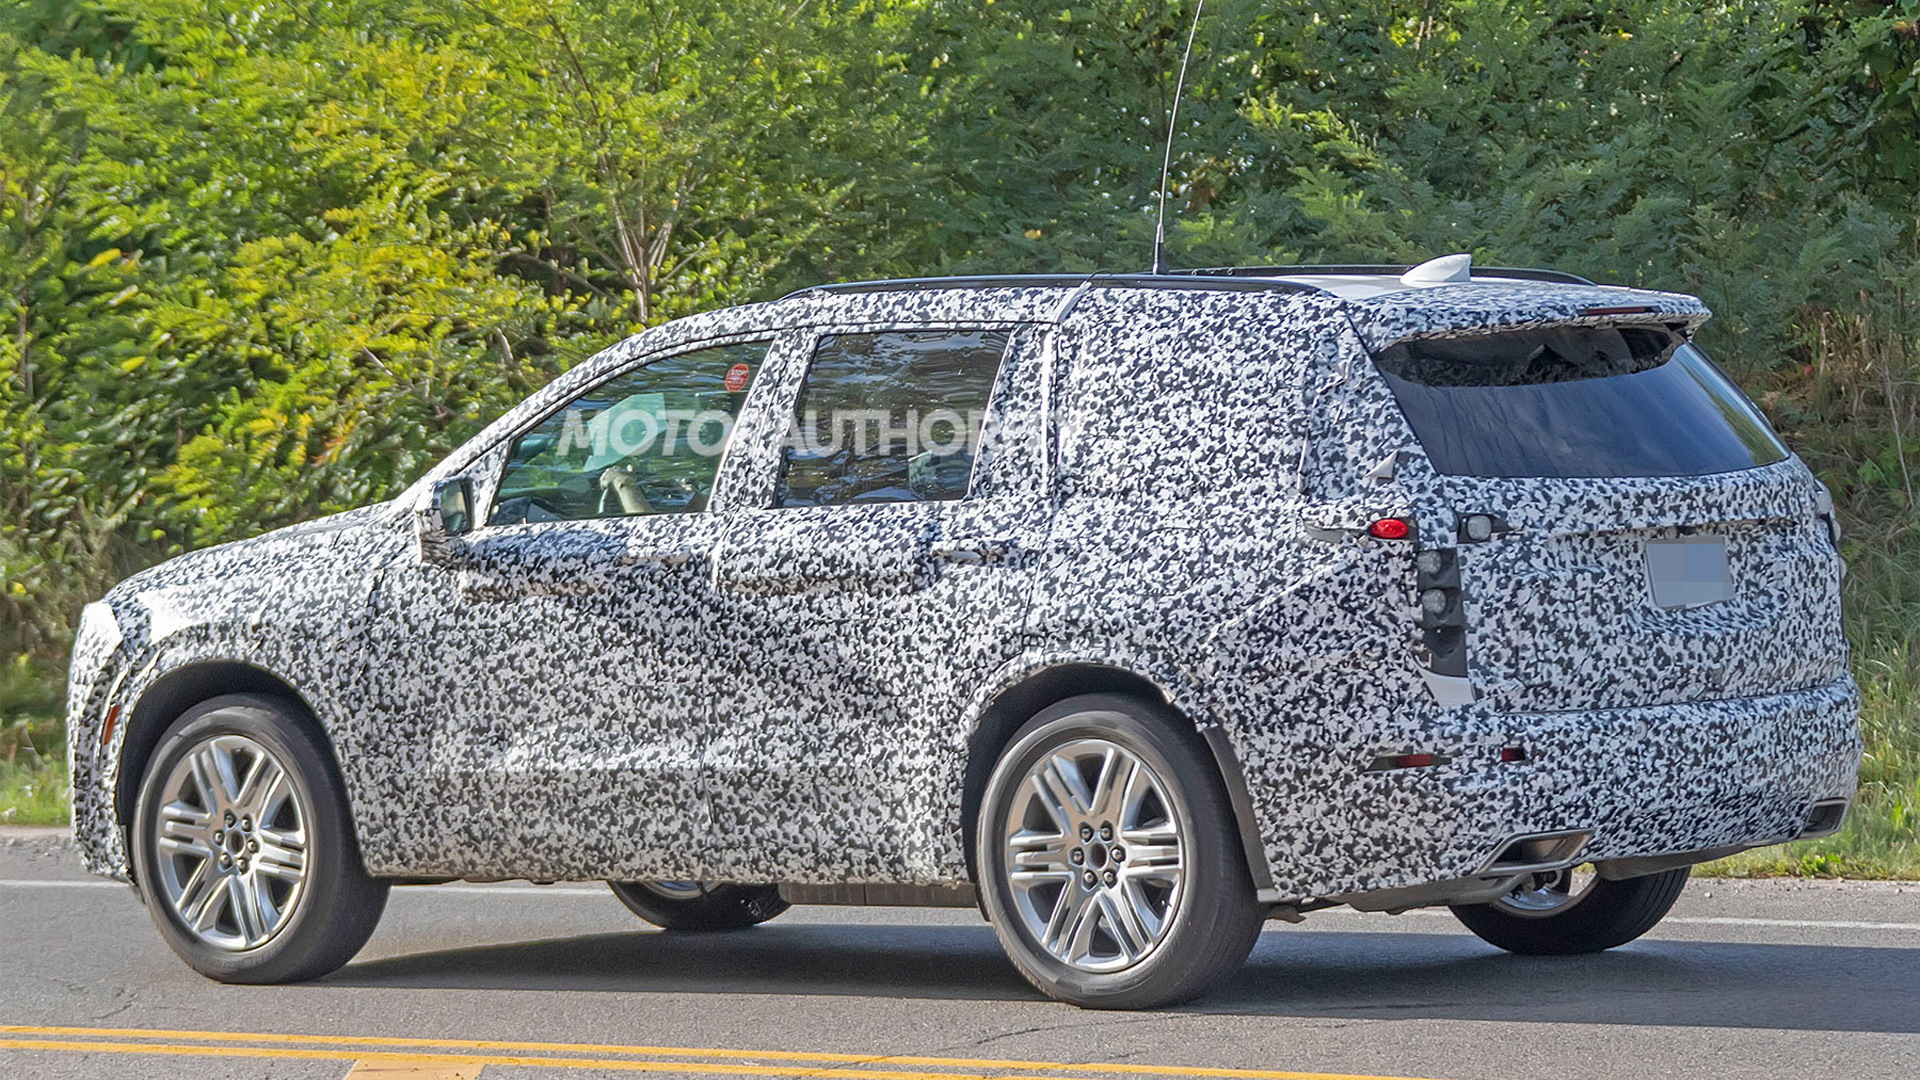 2020 Cadillac Xt6 3 Row Crossover Debuting In Detroit